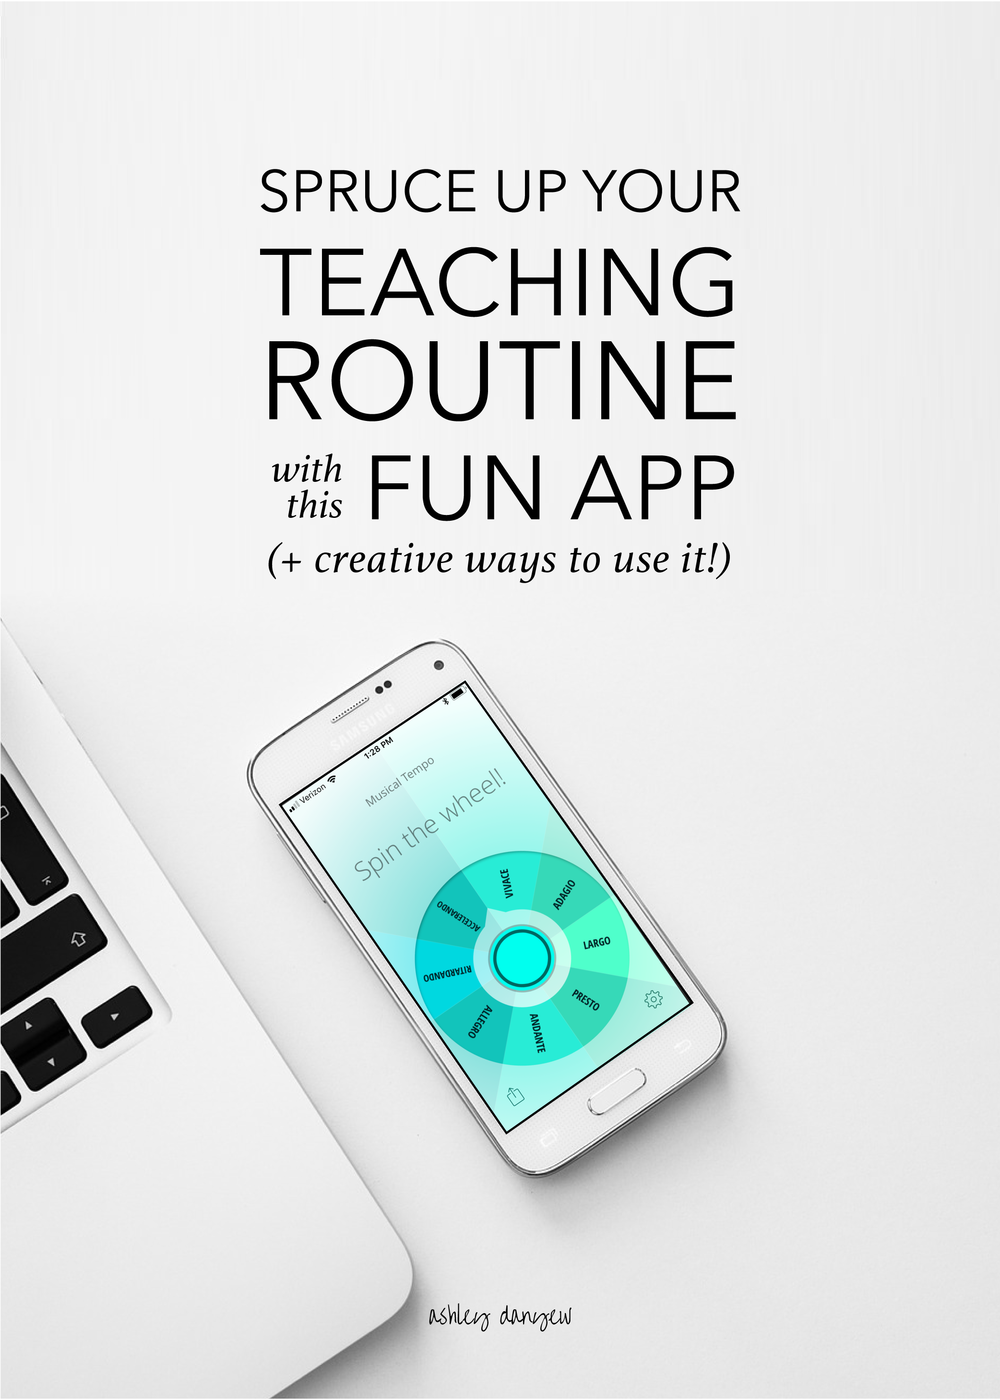 Copy of Spruce Up Your Teaching Routine with this Fun App (+ Creative Ways to Use It!)